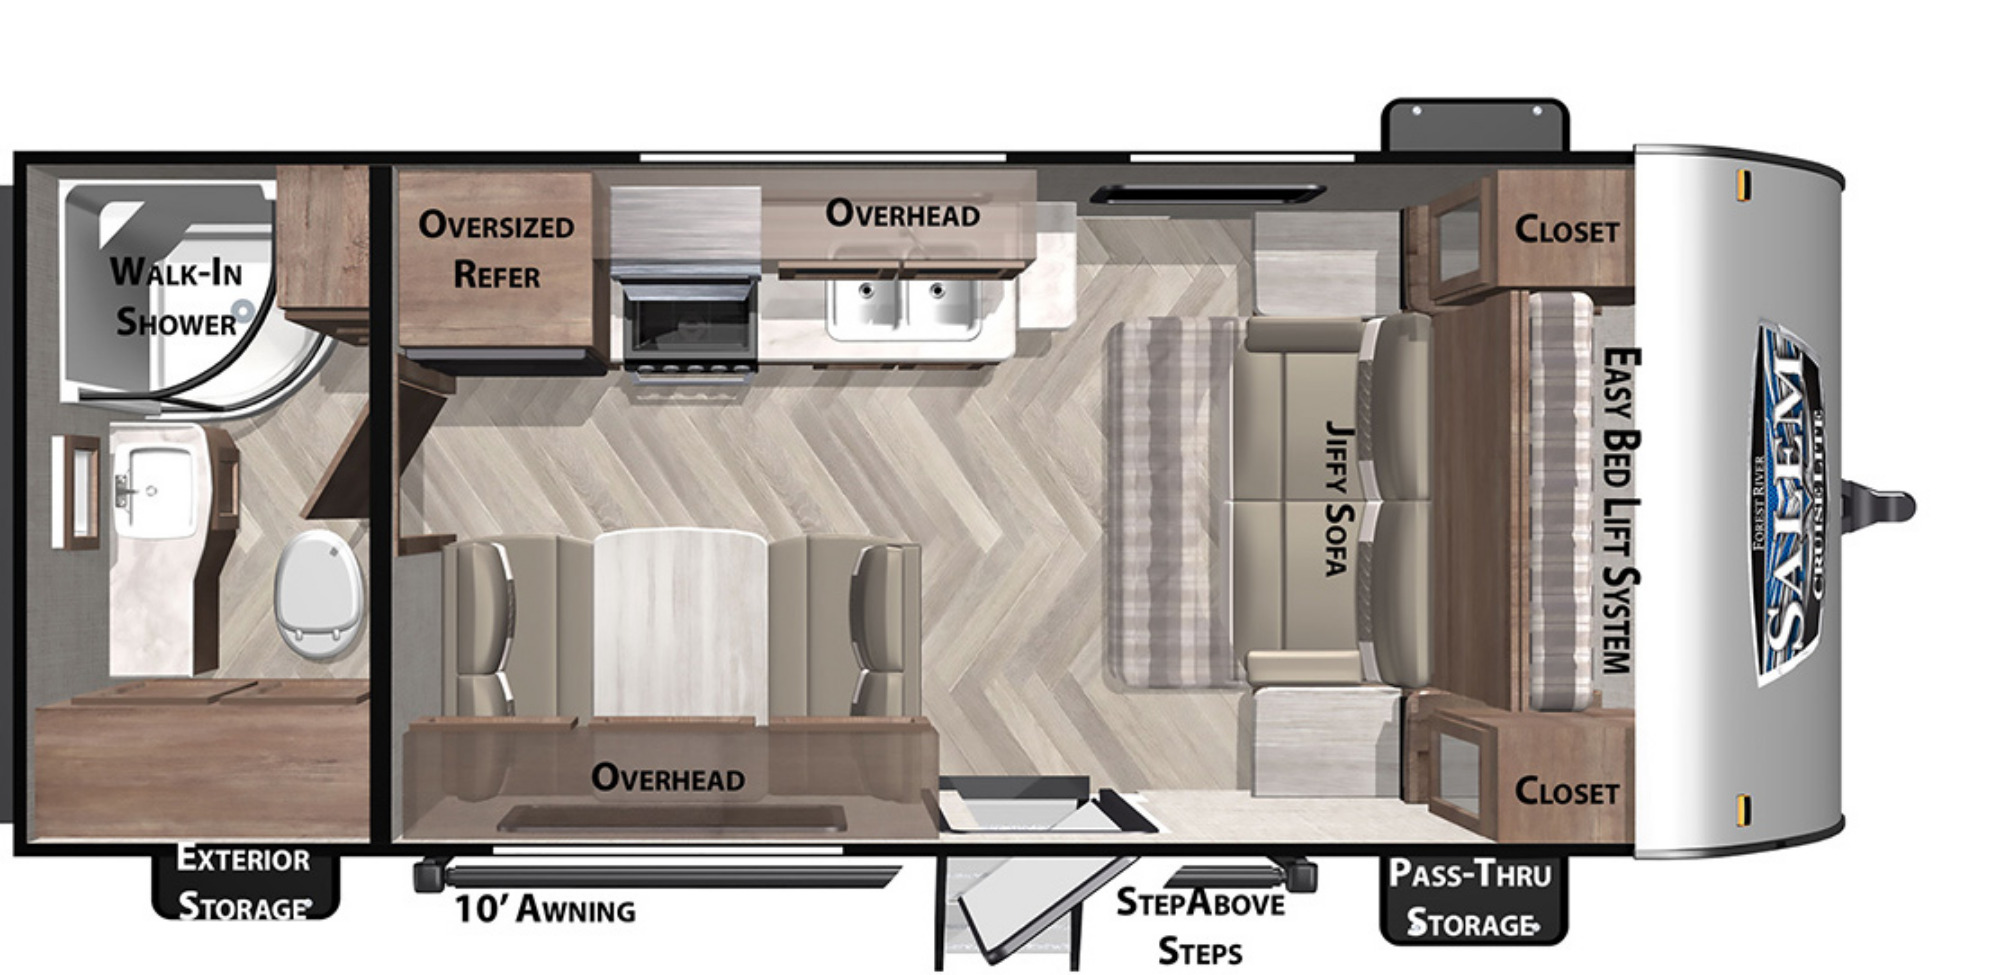 View Floor Plan for 2021 FOREST RIVER SALEM CRUISE LITE 171RBXL